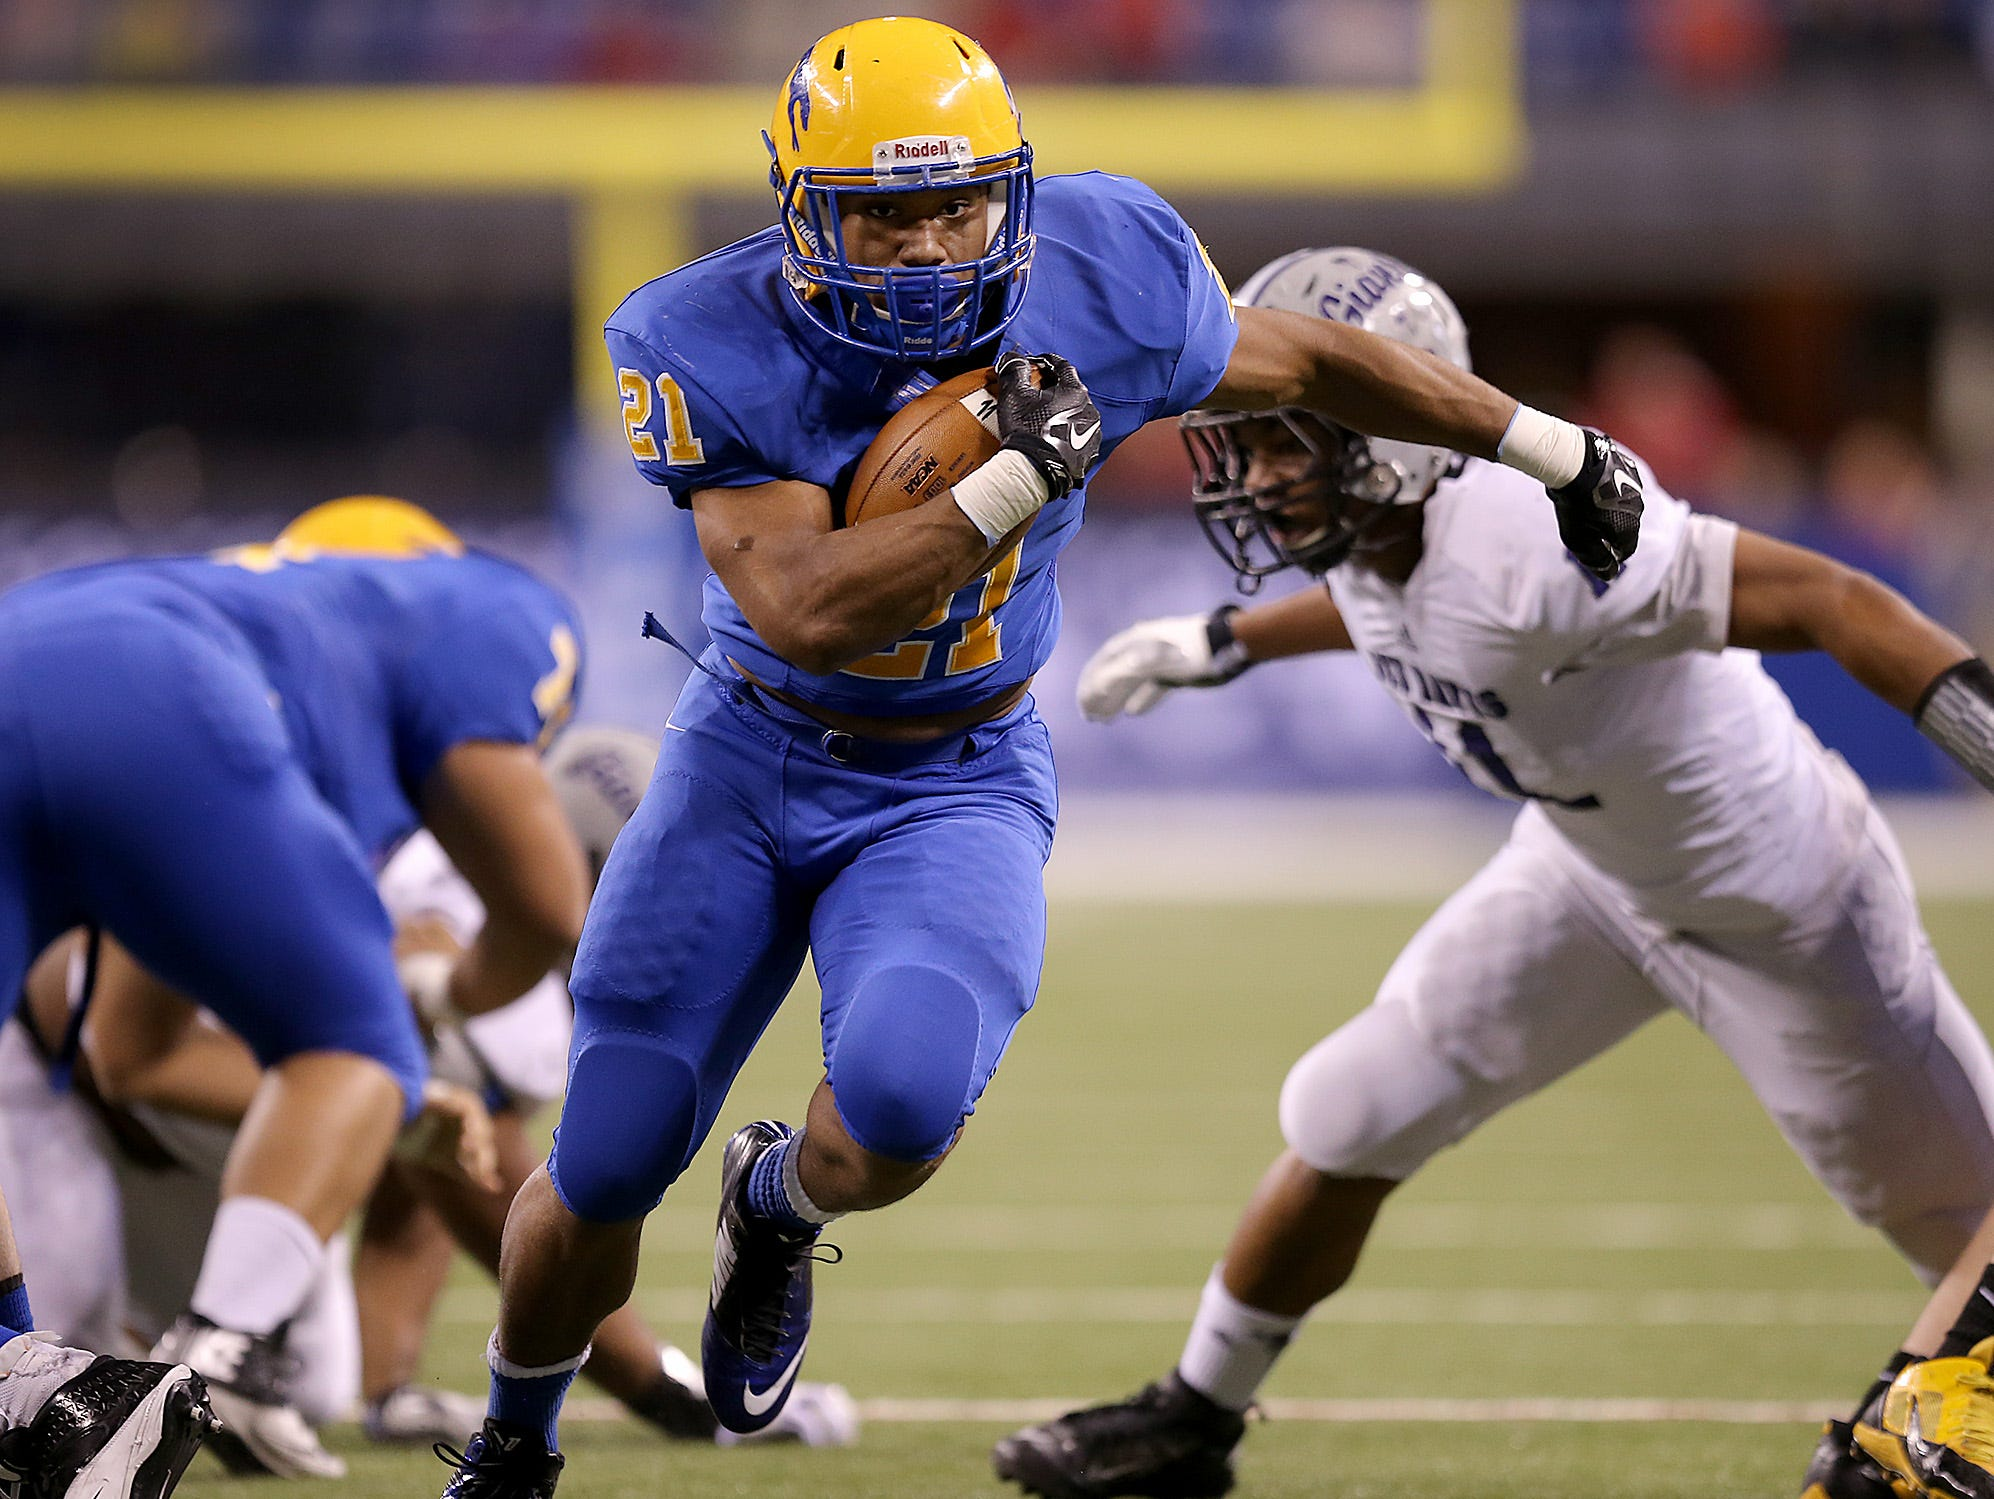 Carmel is one of four Indy-area teams ranked in MaxPreps' top 25 nationally for basketball/football combo.